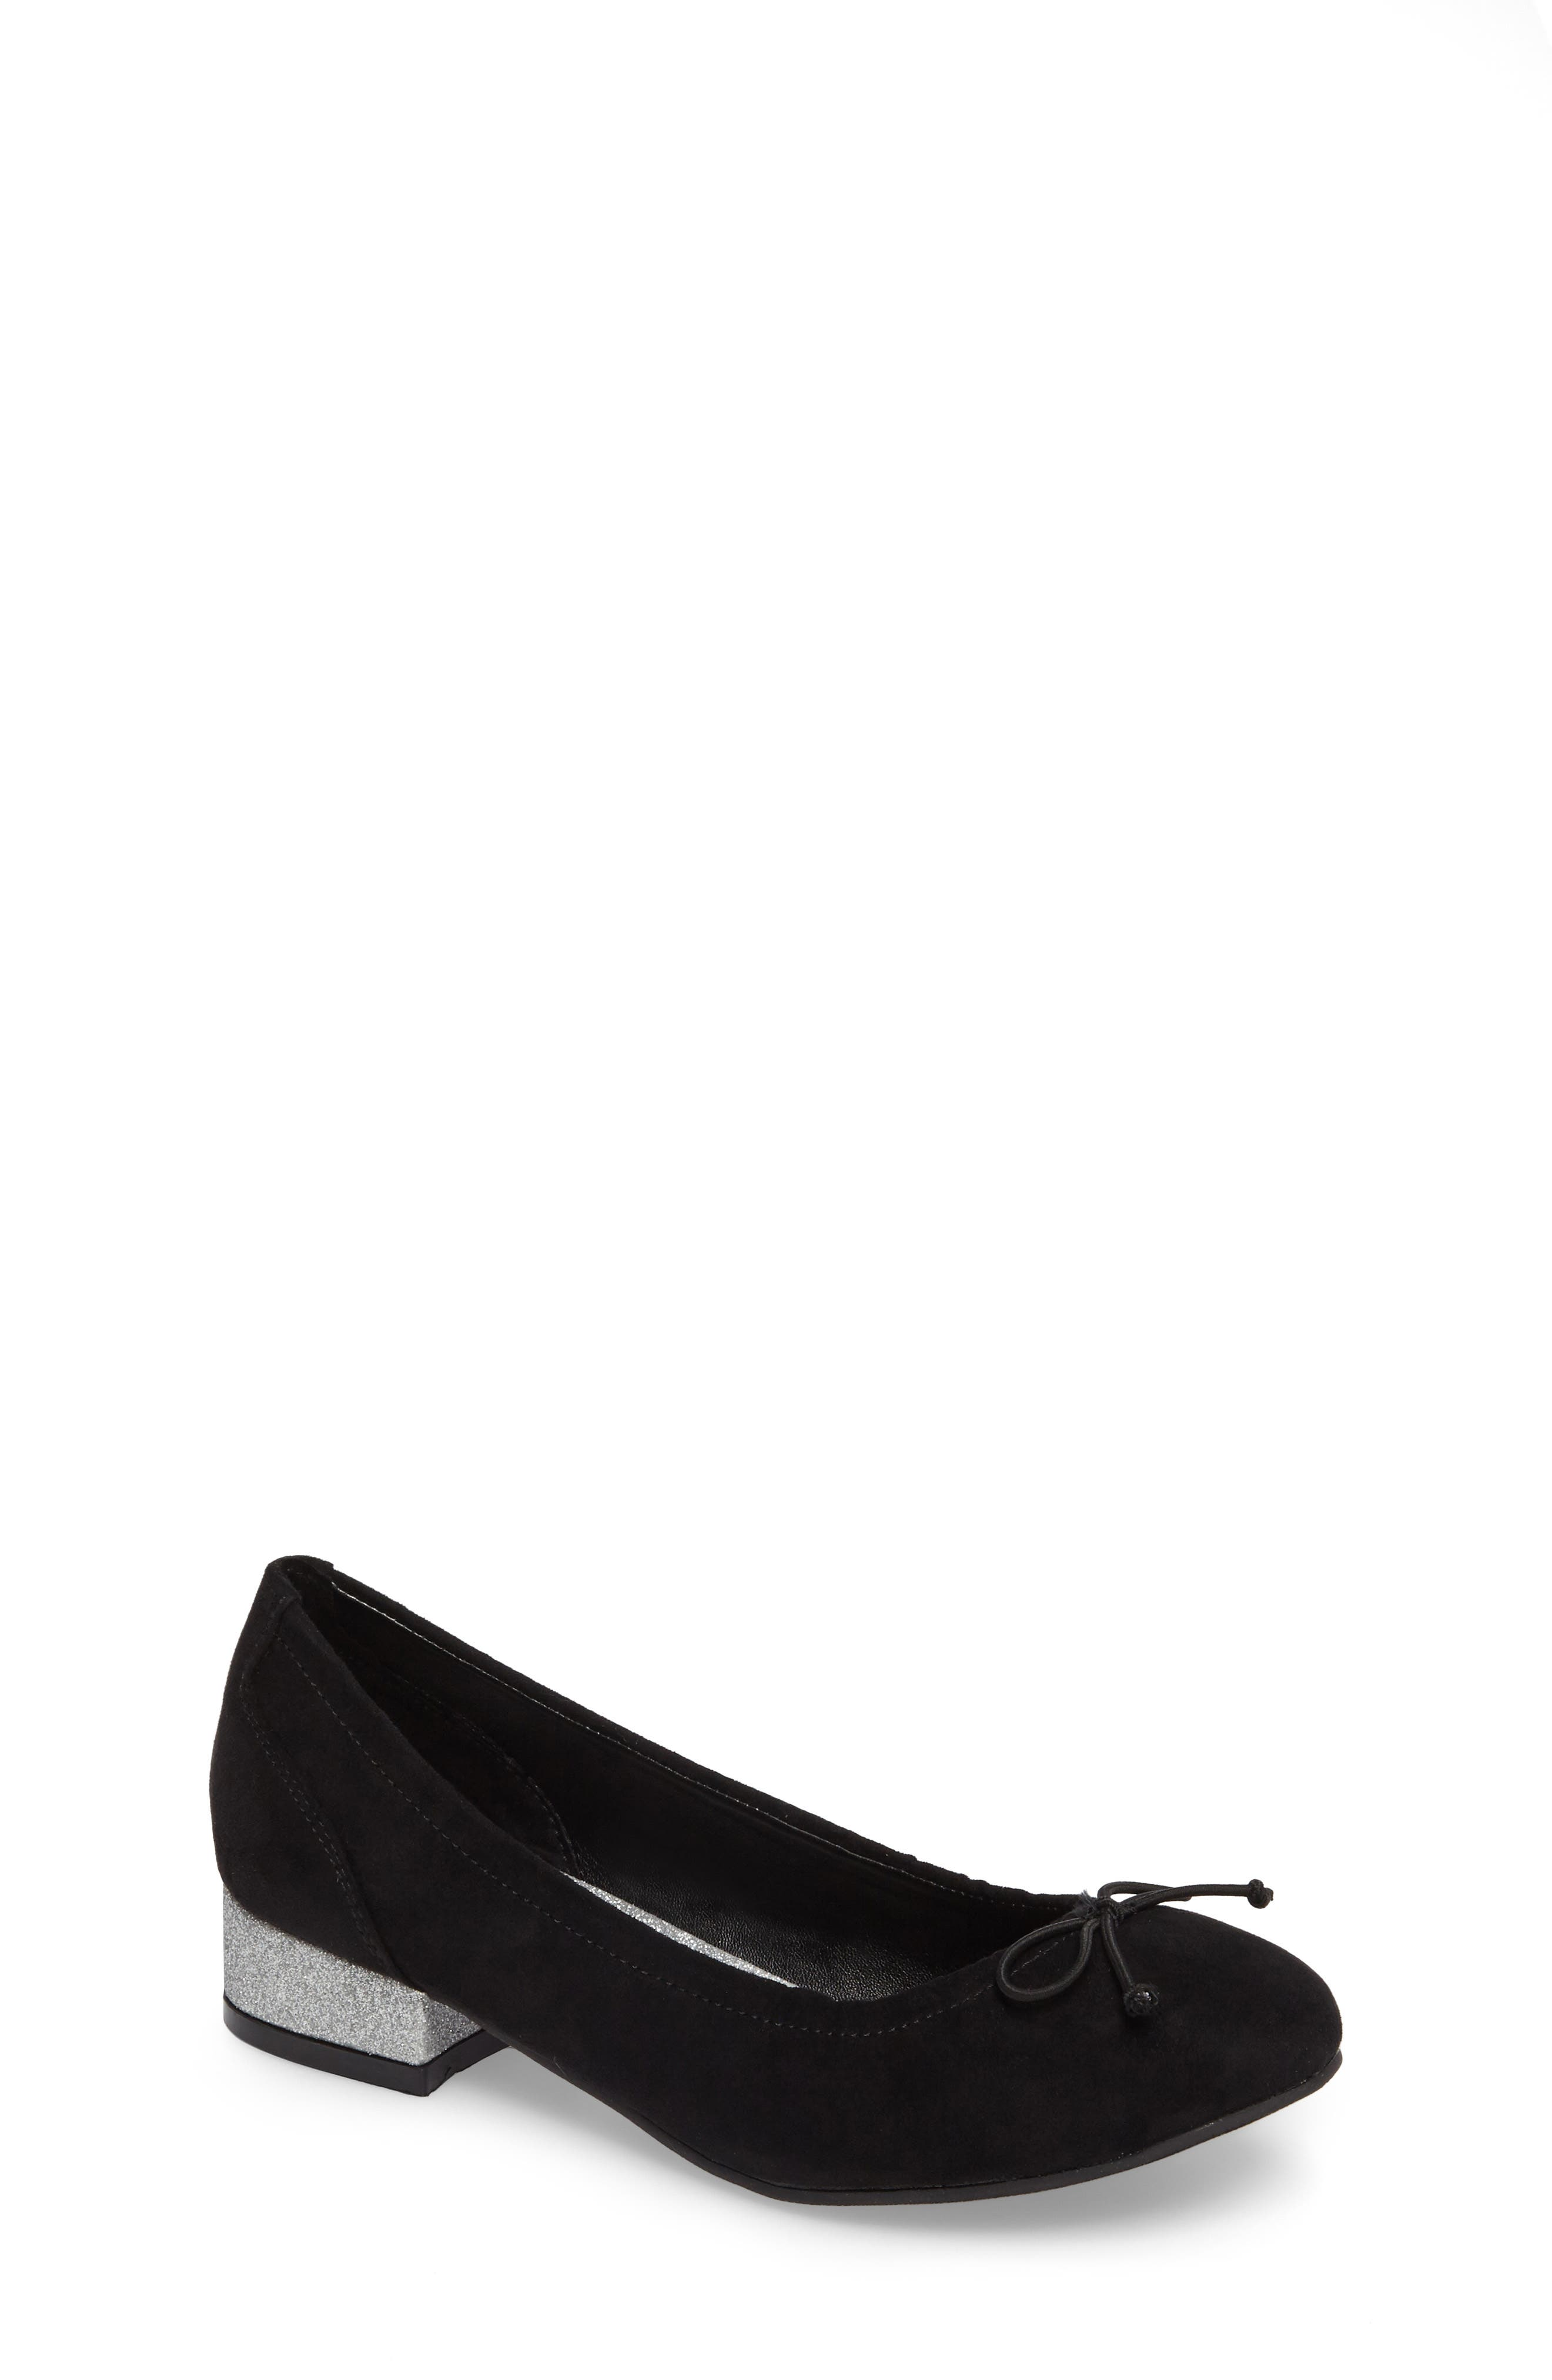 Alternate Image 1 Selected - Reaction Kenneth Cole Tap Heel Glittery Slip-On (Toddler, Little Kid & Big Kid)